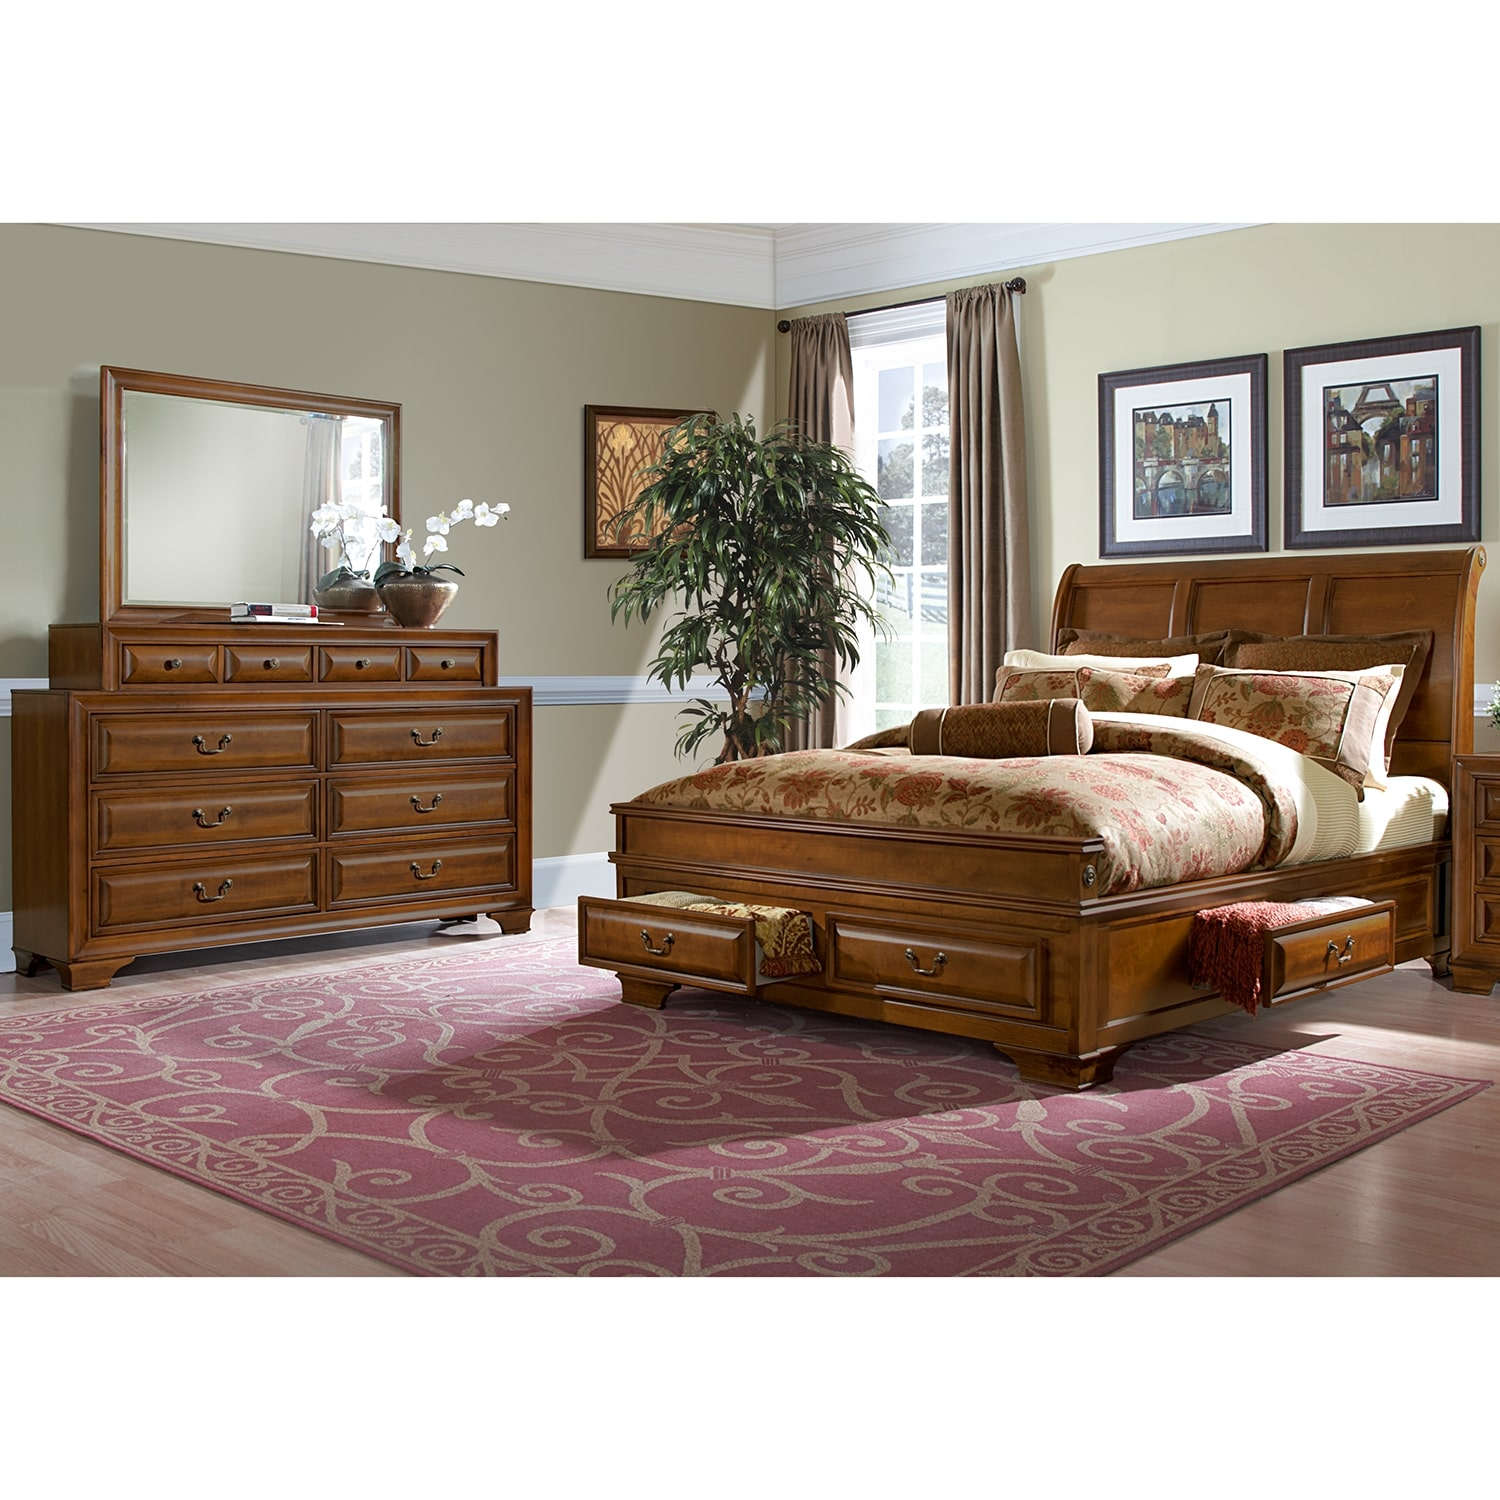 sanibelle 5 piece king storage bedroom set pine american signature furniture. Black Bedroom Furniture Sets. Home Design Ideas